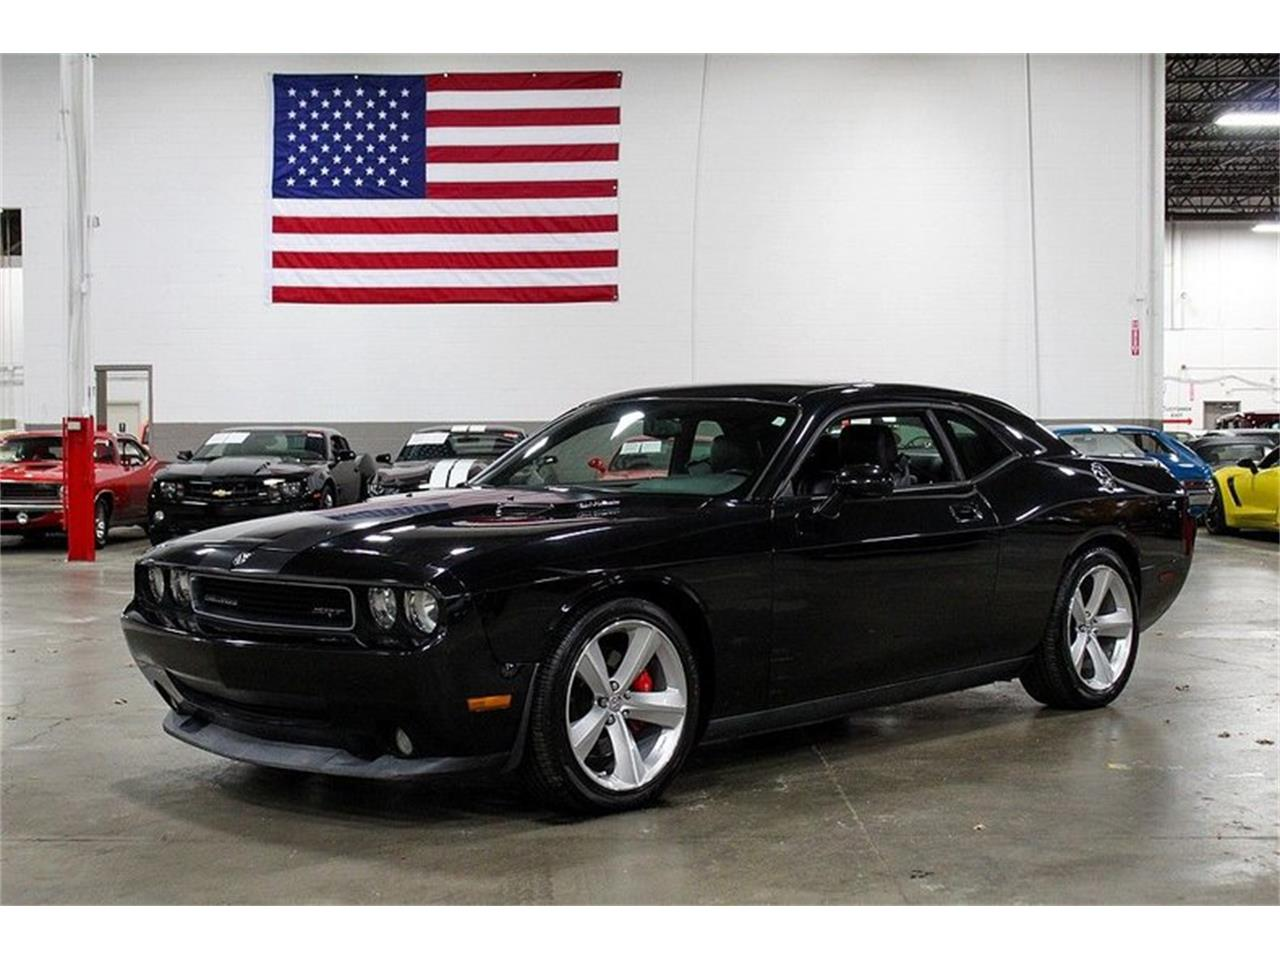 for sale 2009 dodge challenger in kentwood, michigan cars - grand rapids, mi at geebo